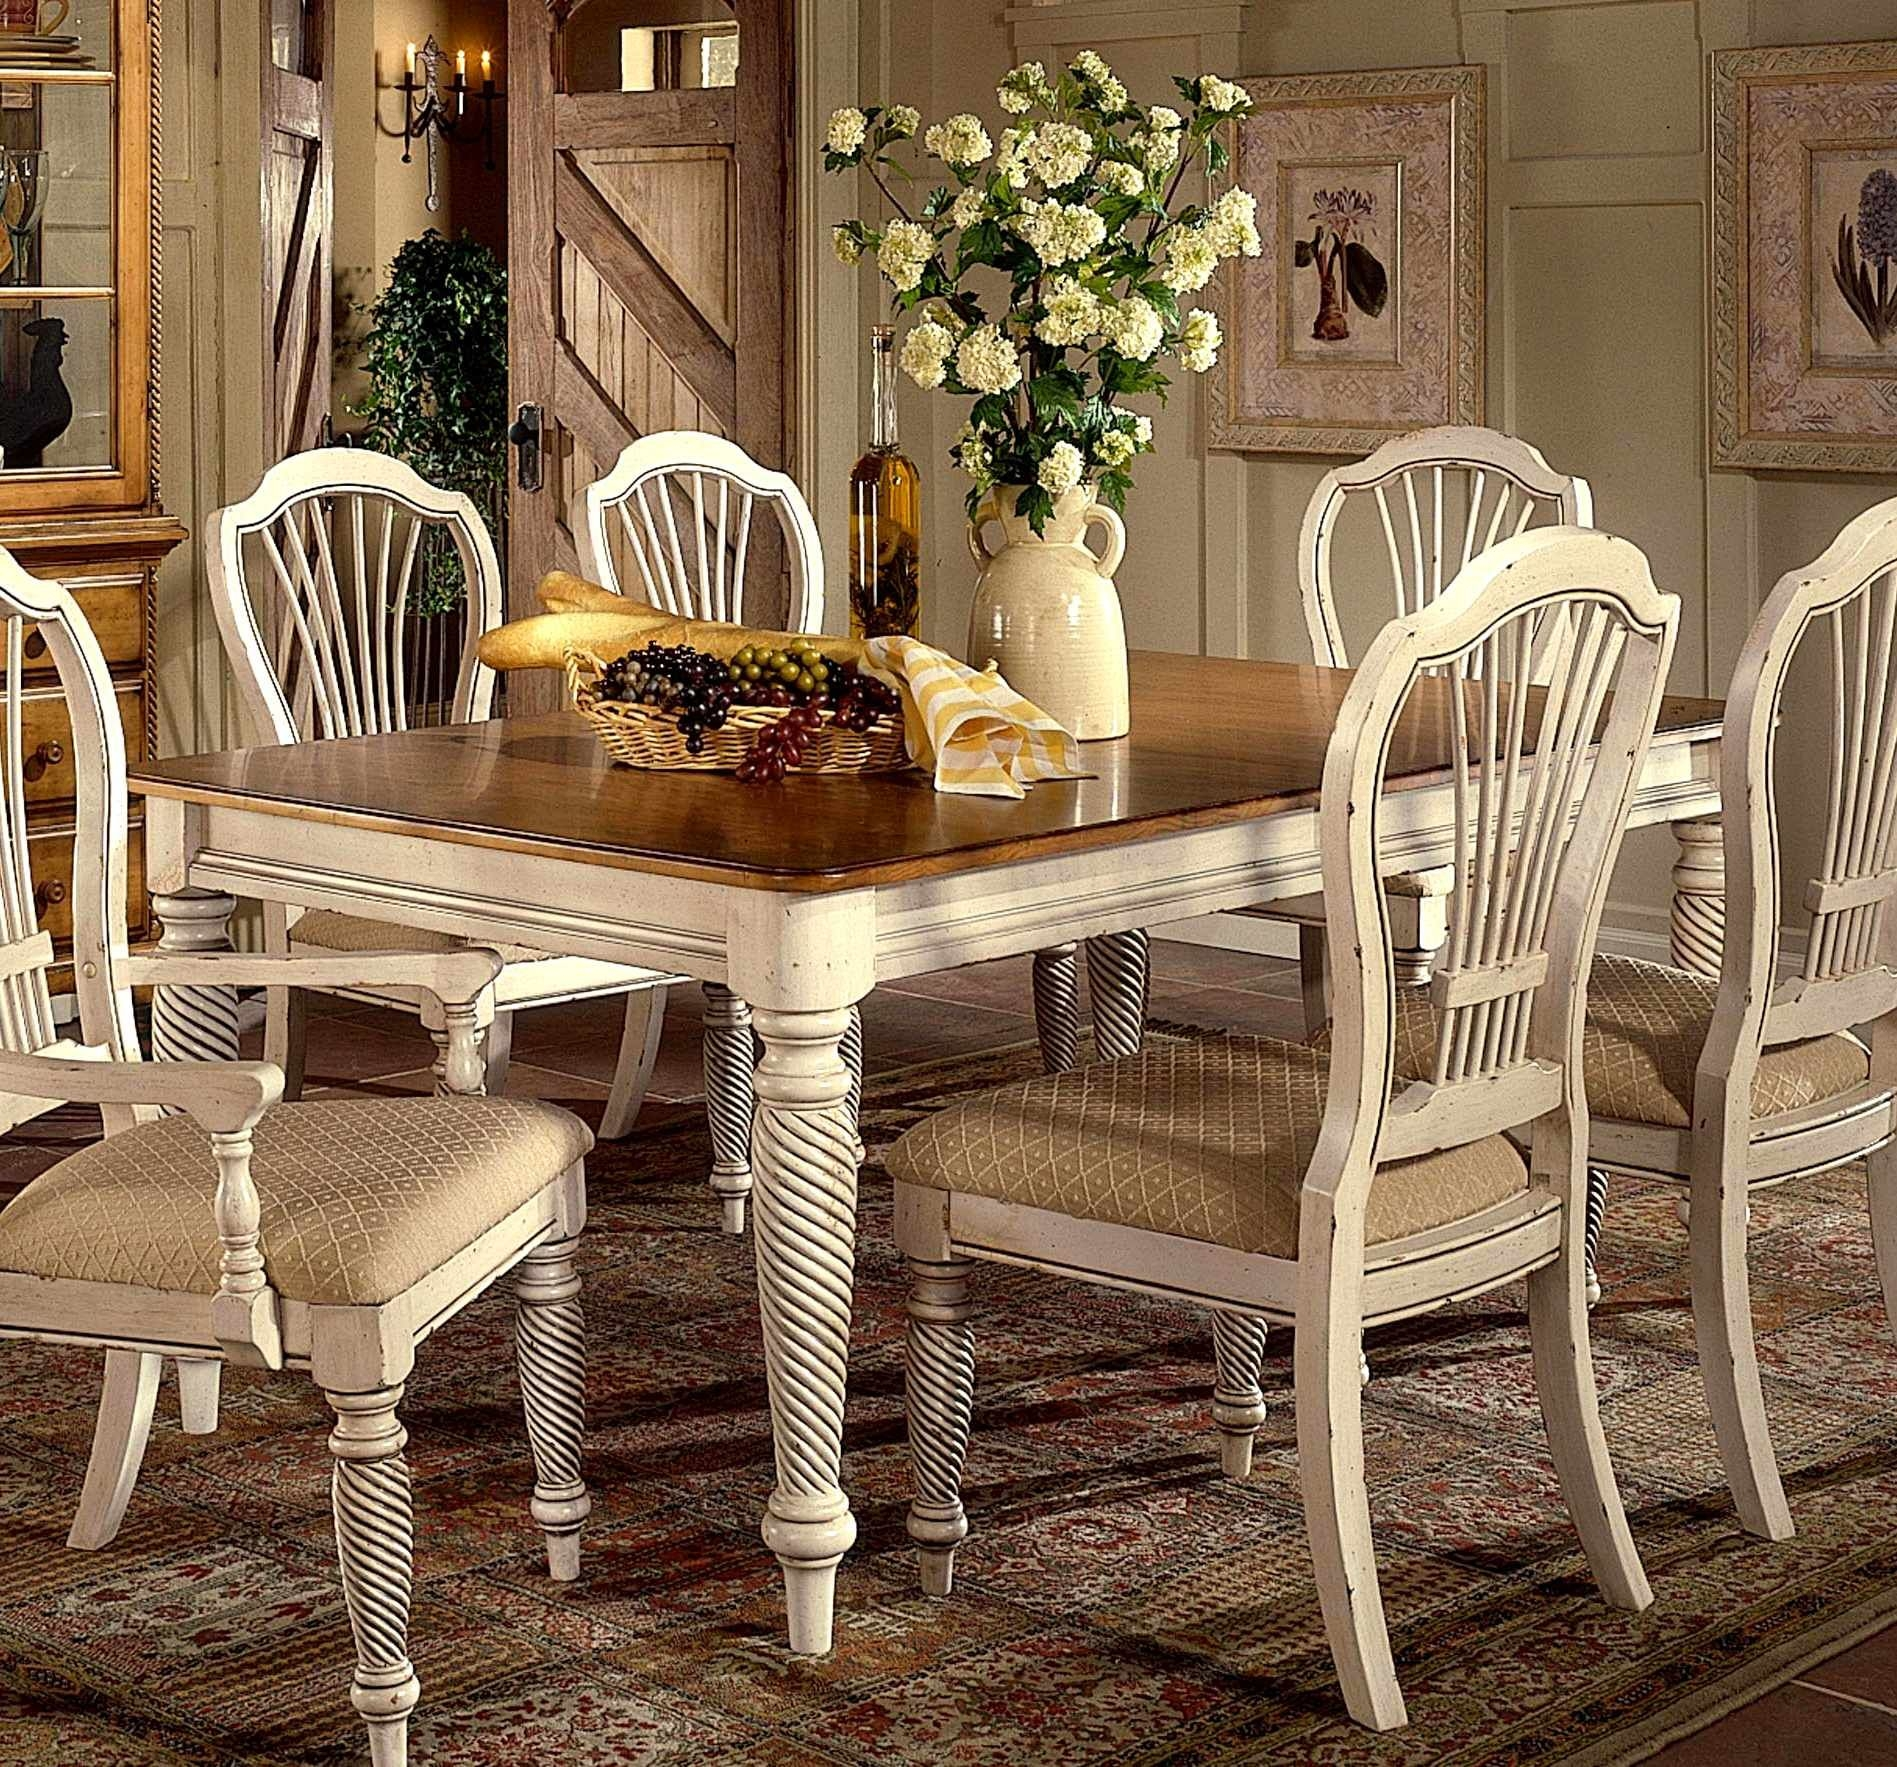 french country kitchen table ideas on foter rh foter com